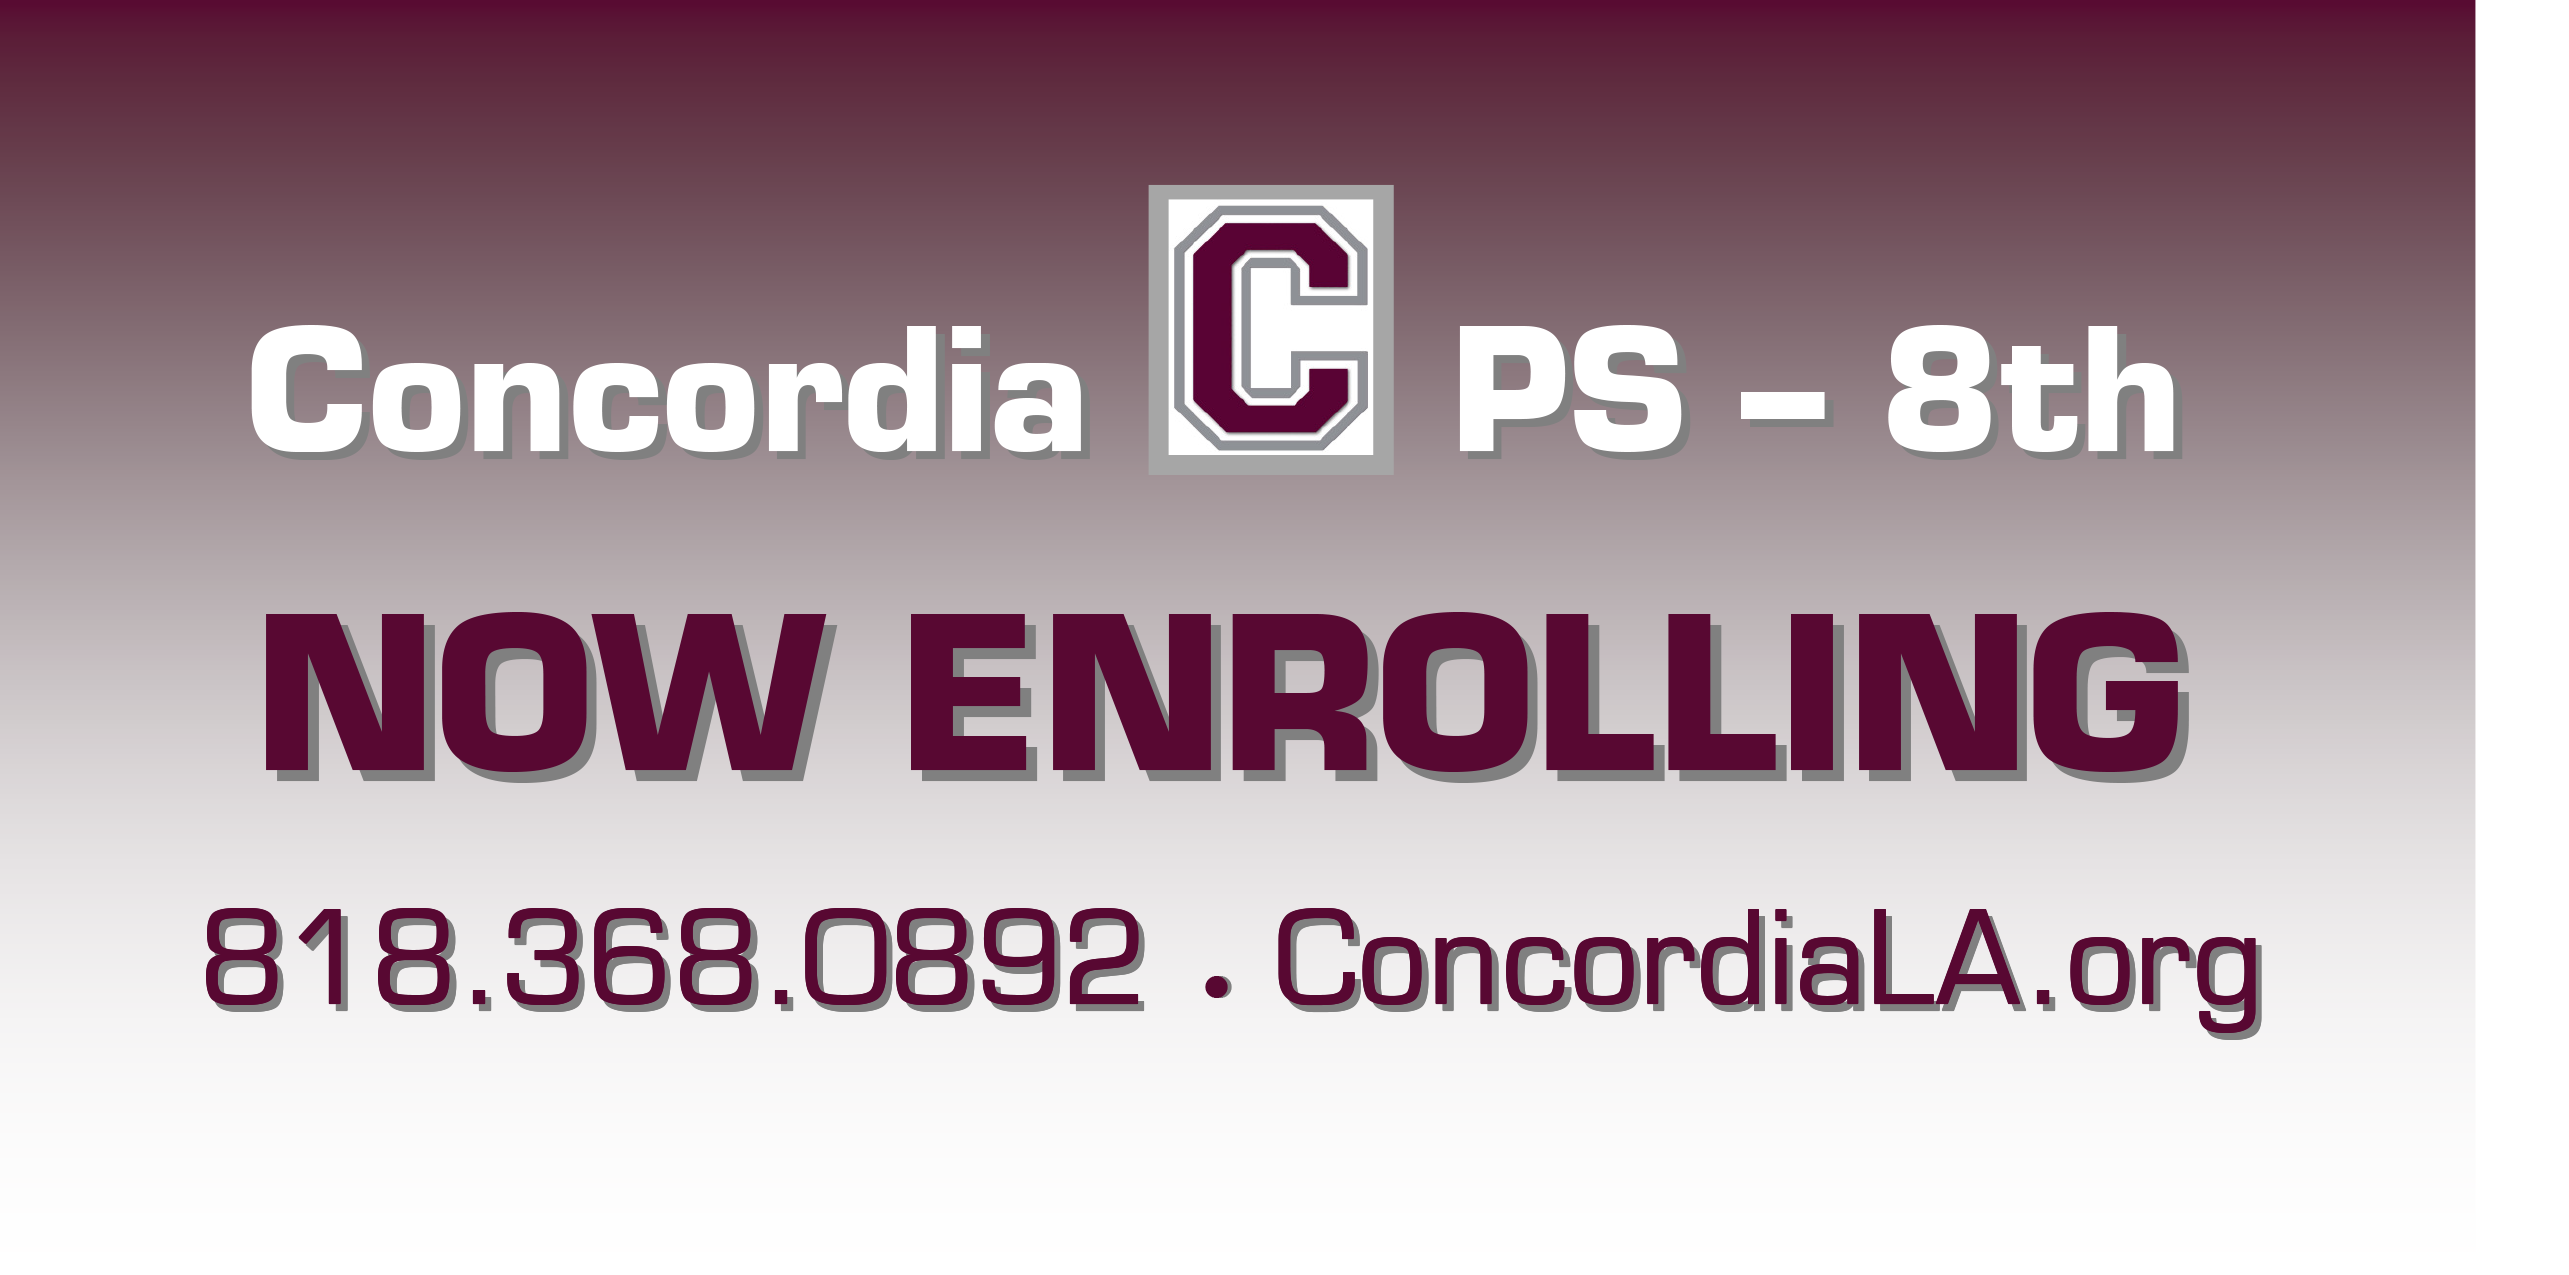 Now Enrolling at Concordia